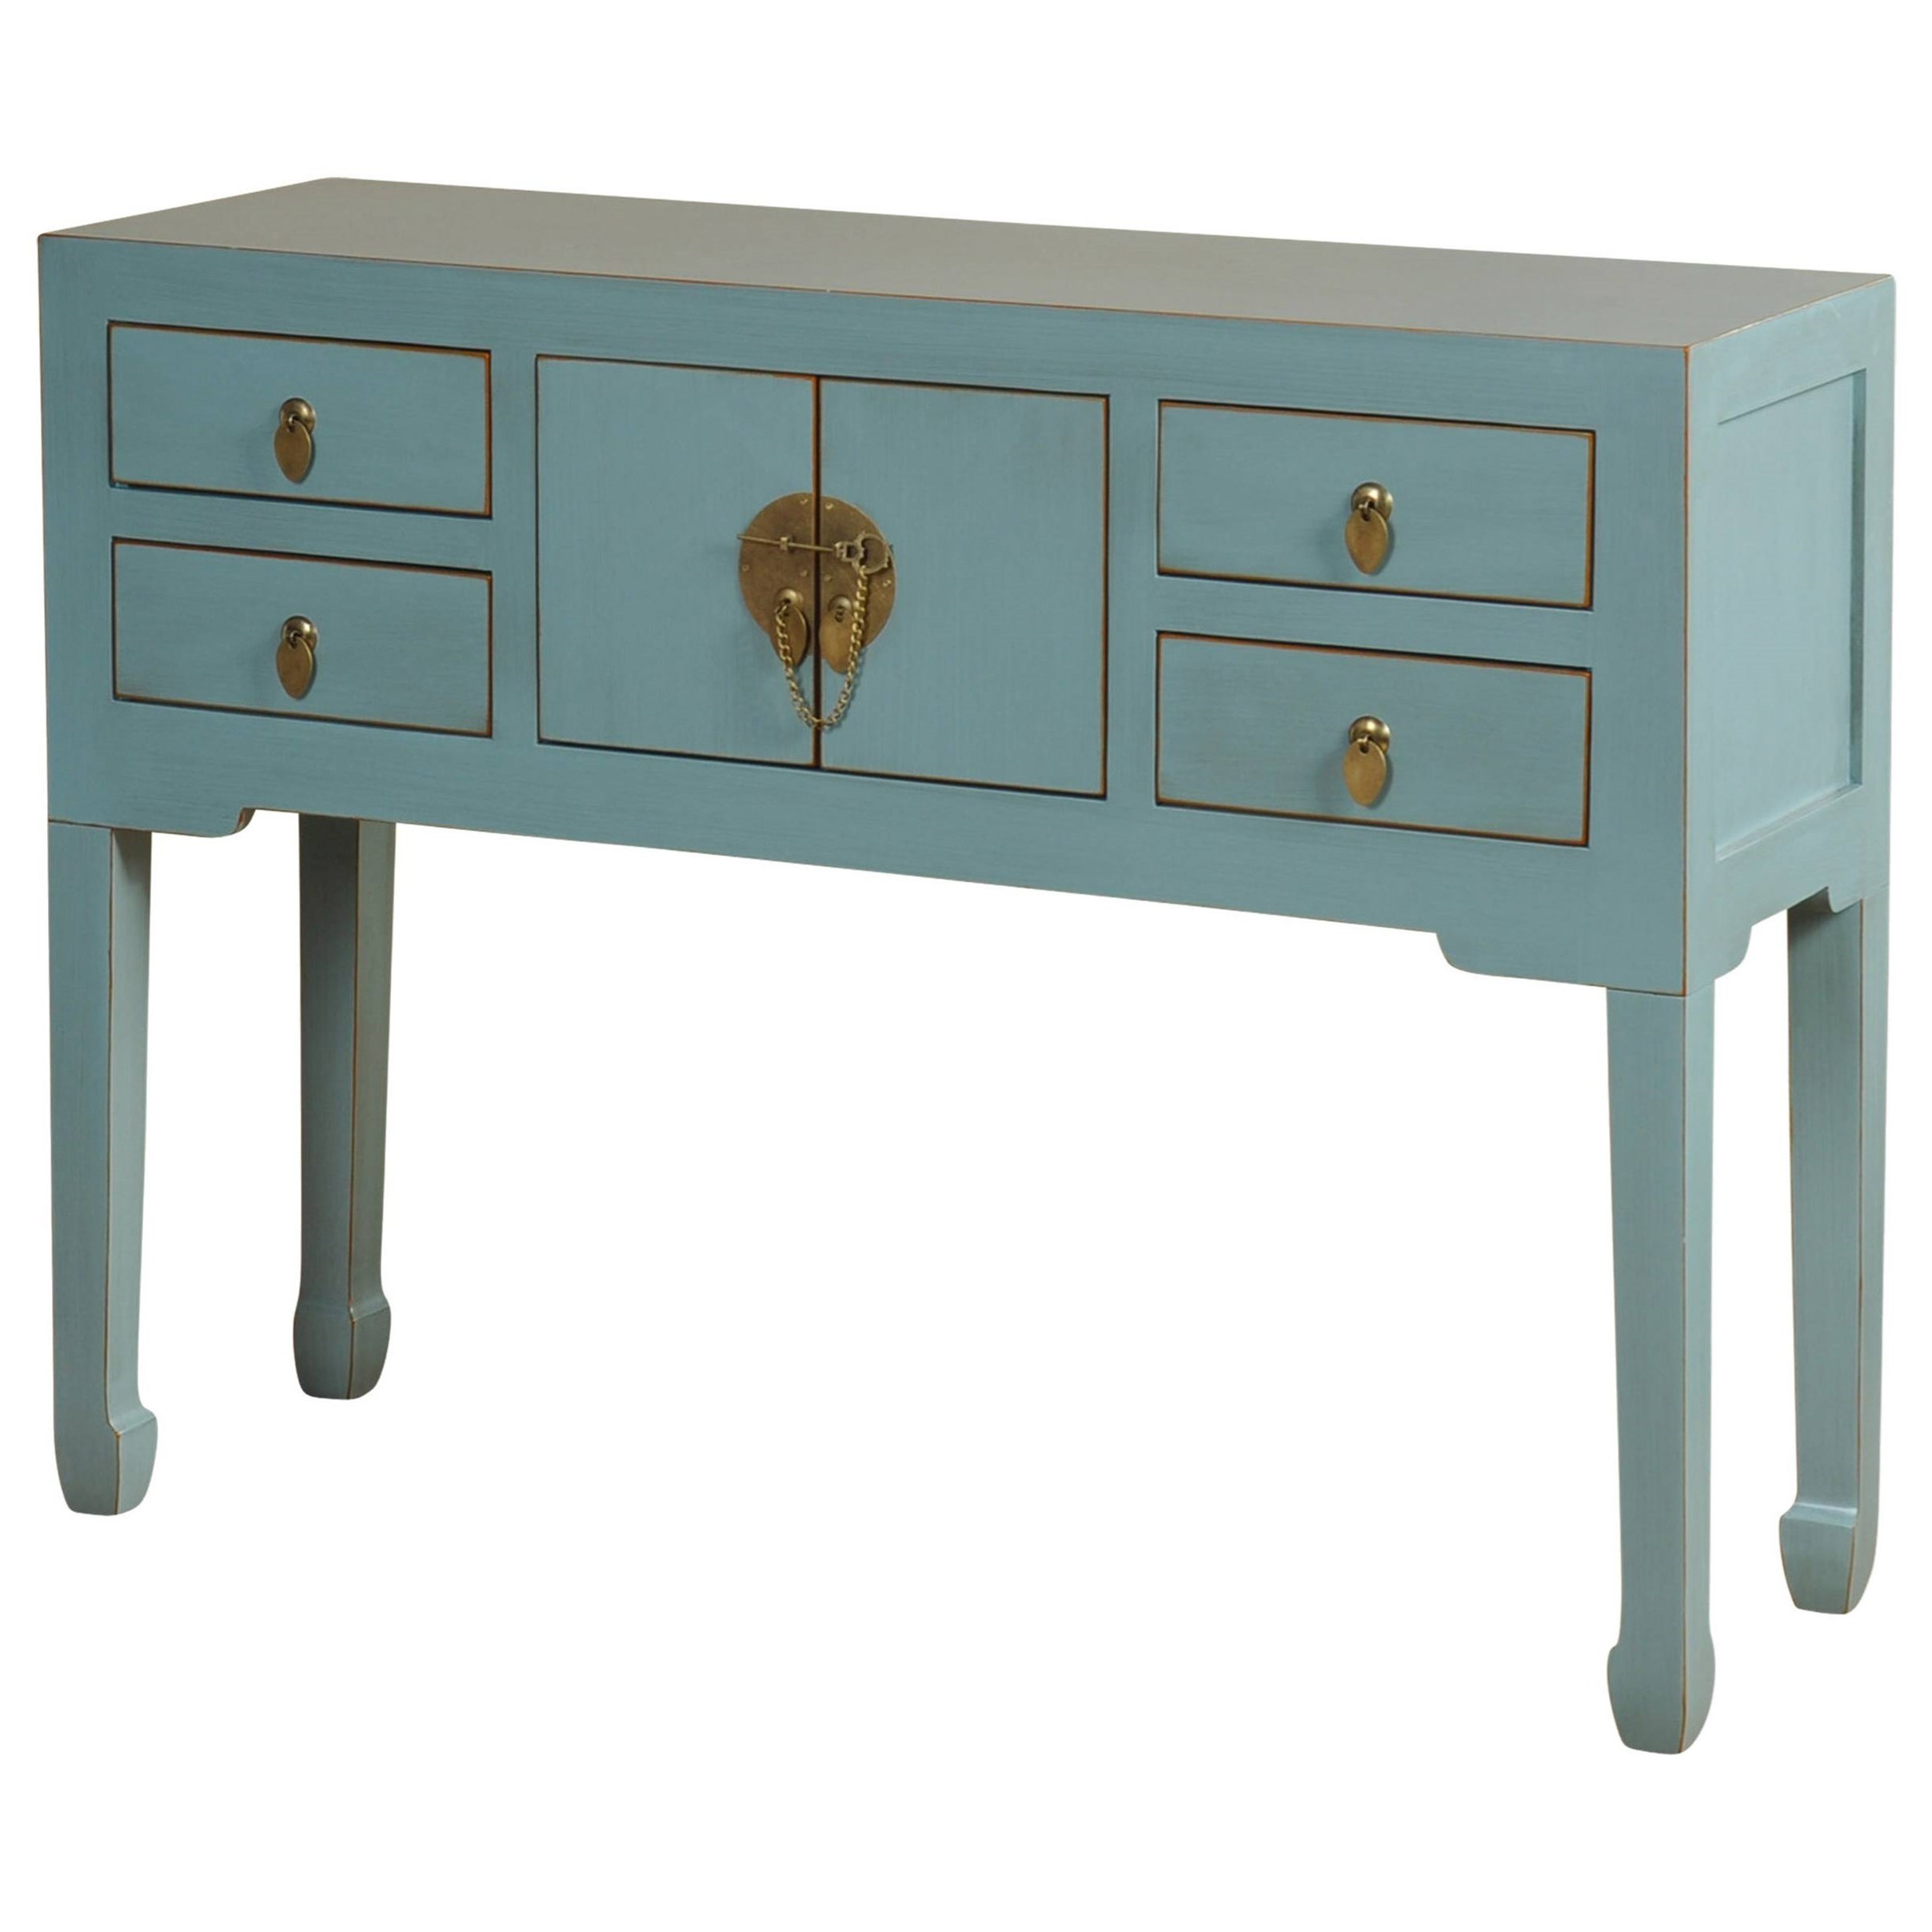 StyleCraft Occasional Tables Blue Console Table - Item Number: SF2361